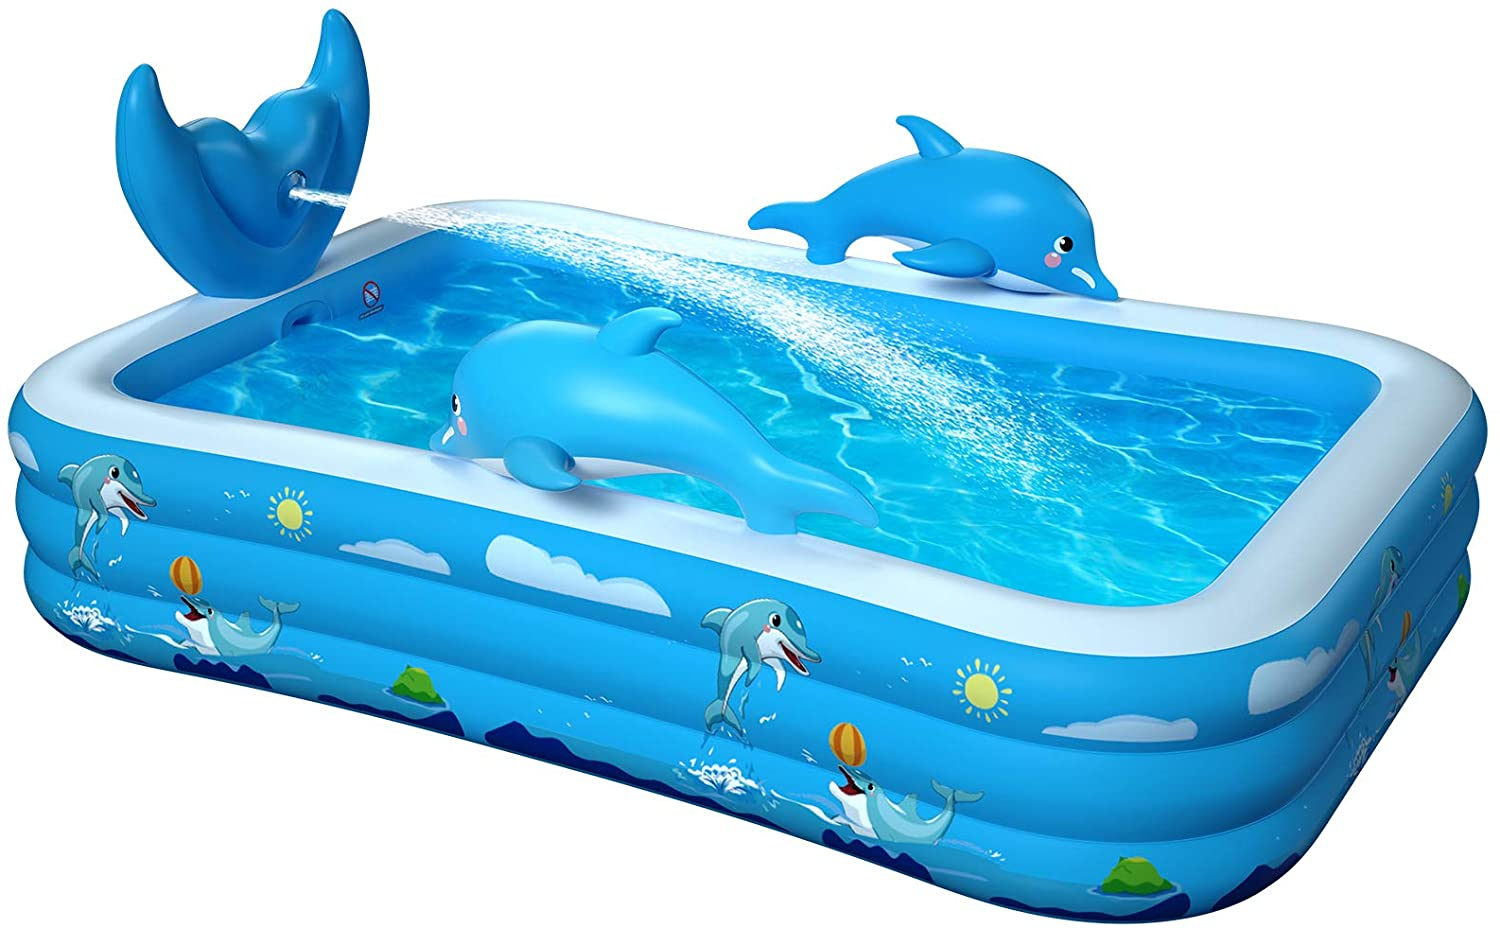 Inflatable Pool for Kids Family Oxsaml 98